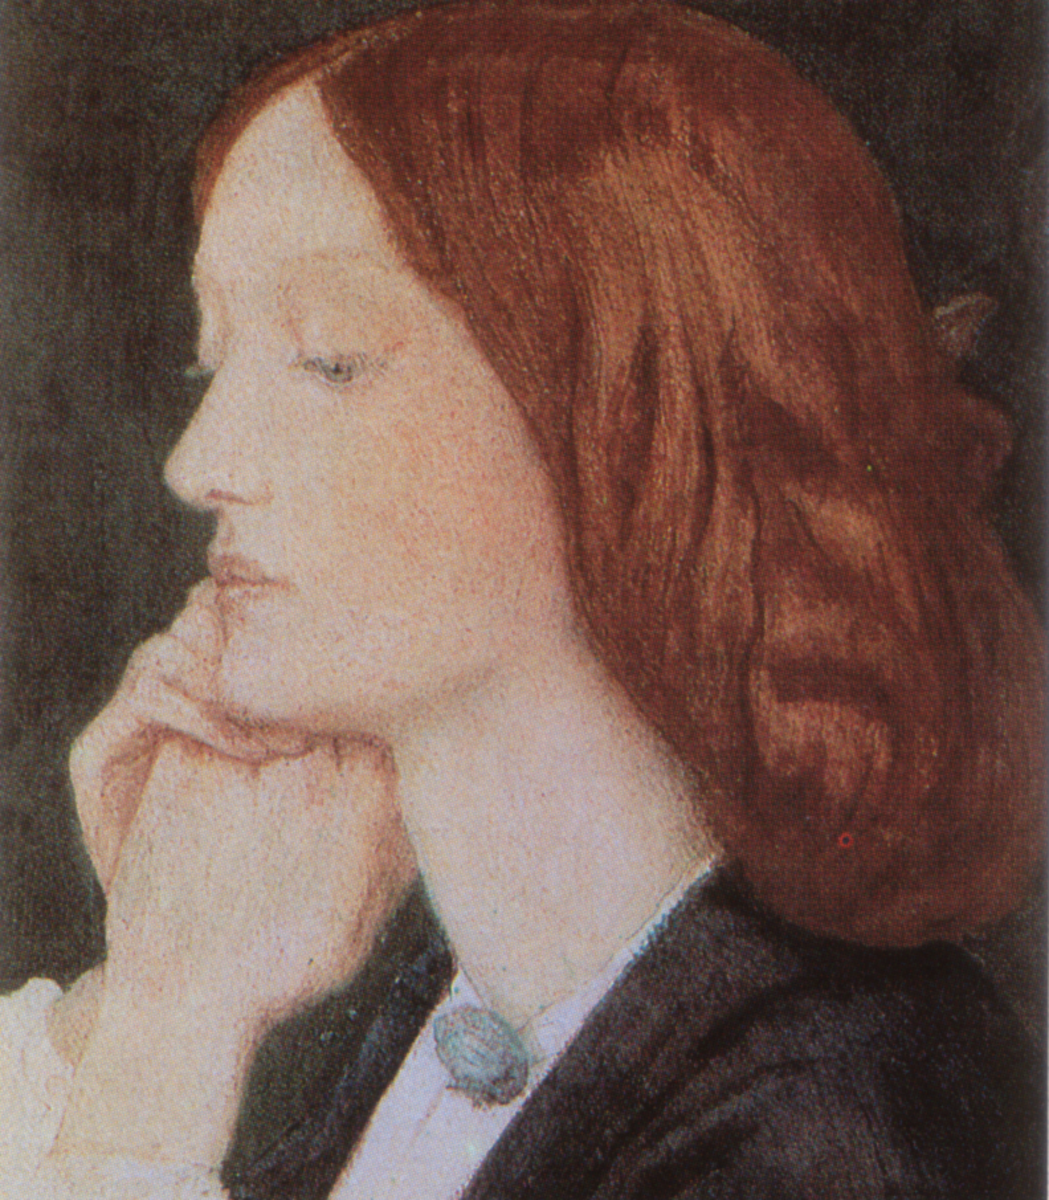 The Somber Life of Pre-Raphaelite Art Model Elizabeth Siddal